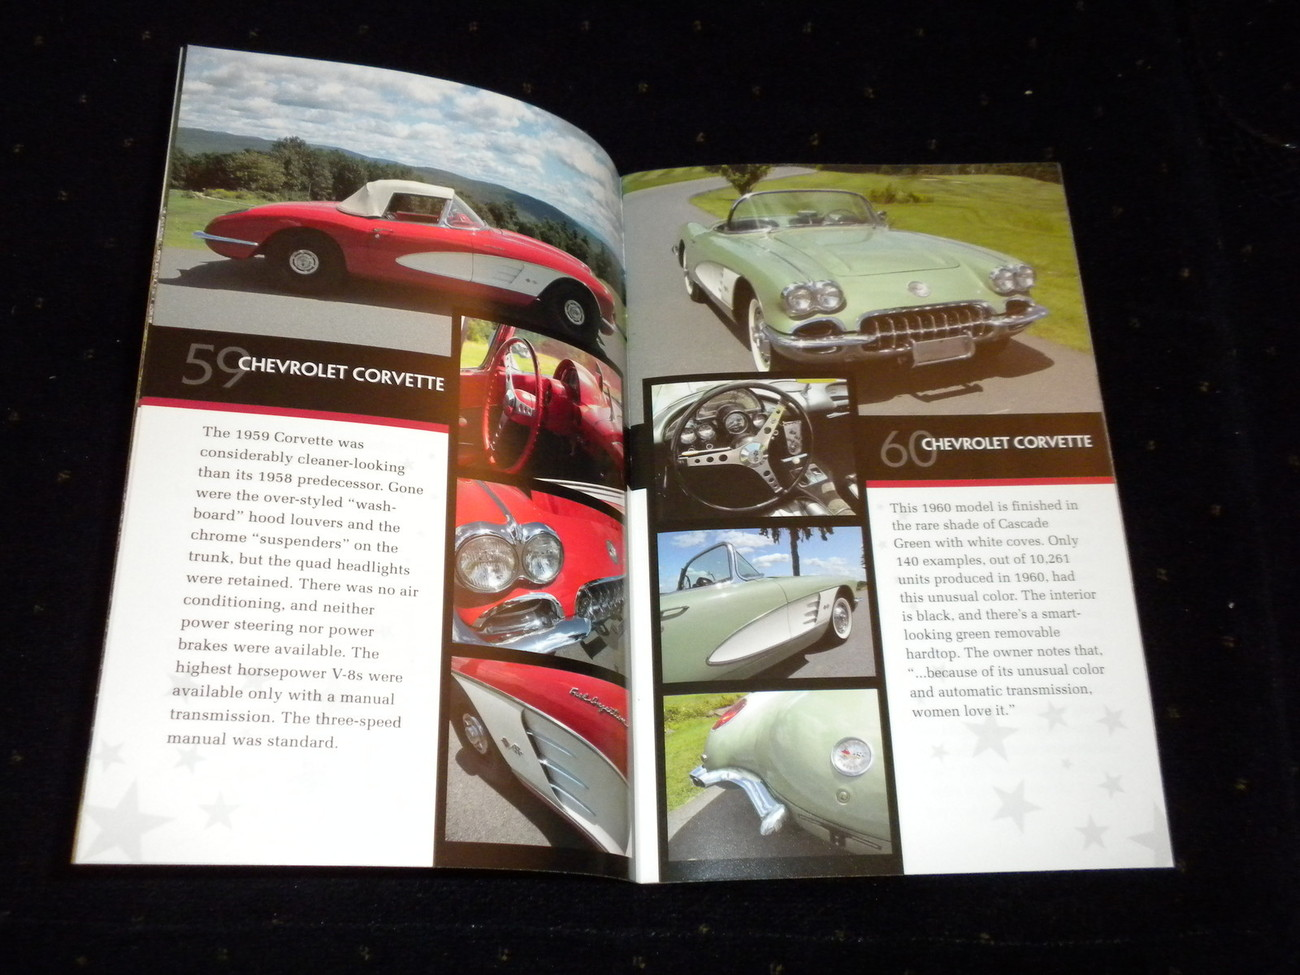 CORVETTE CHEVY CAR color exhibition booklet SARATOGA AUTO MUSEUM 2009